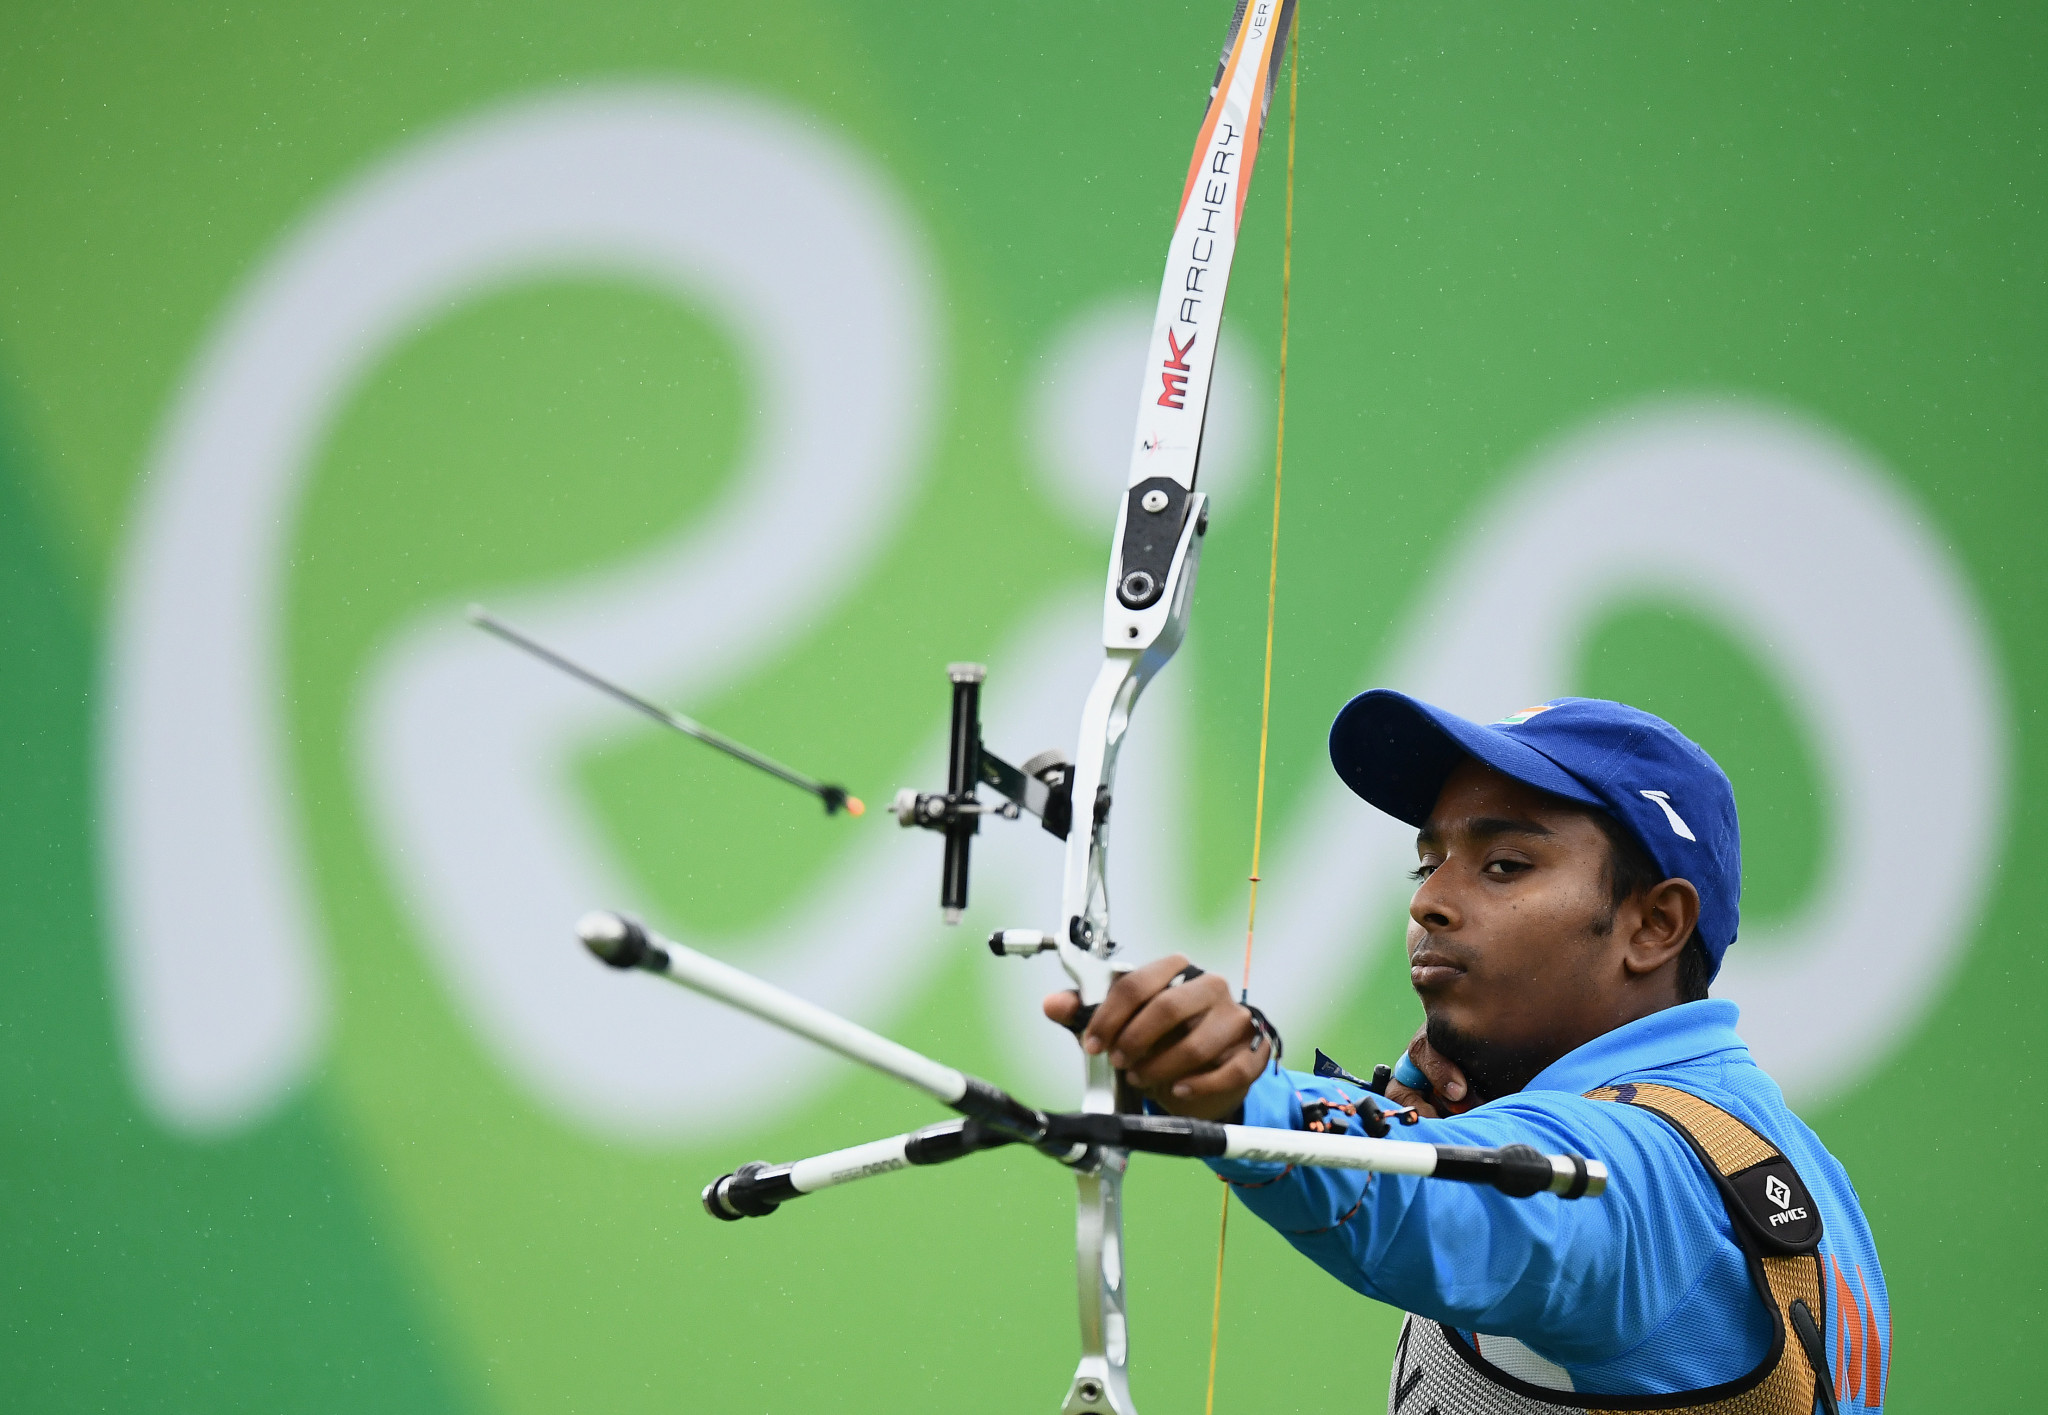 Indian archers had been forced to compete as neutrals following the suspension imposed by World Archery ©Getty Images